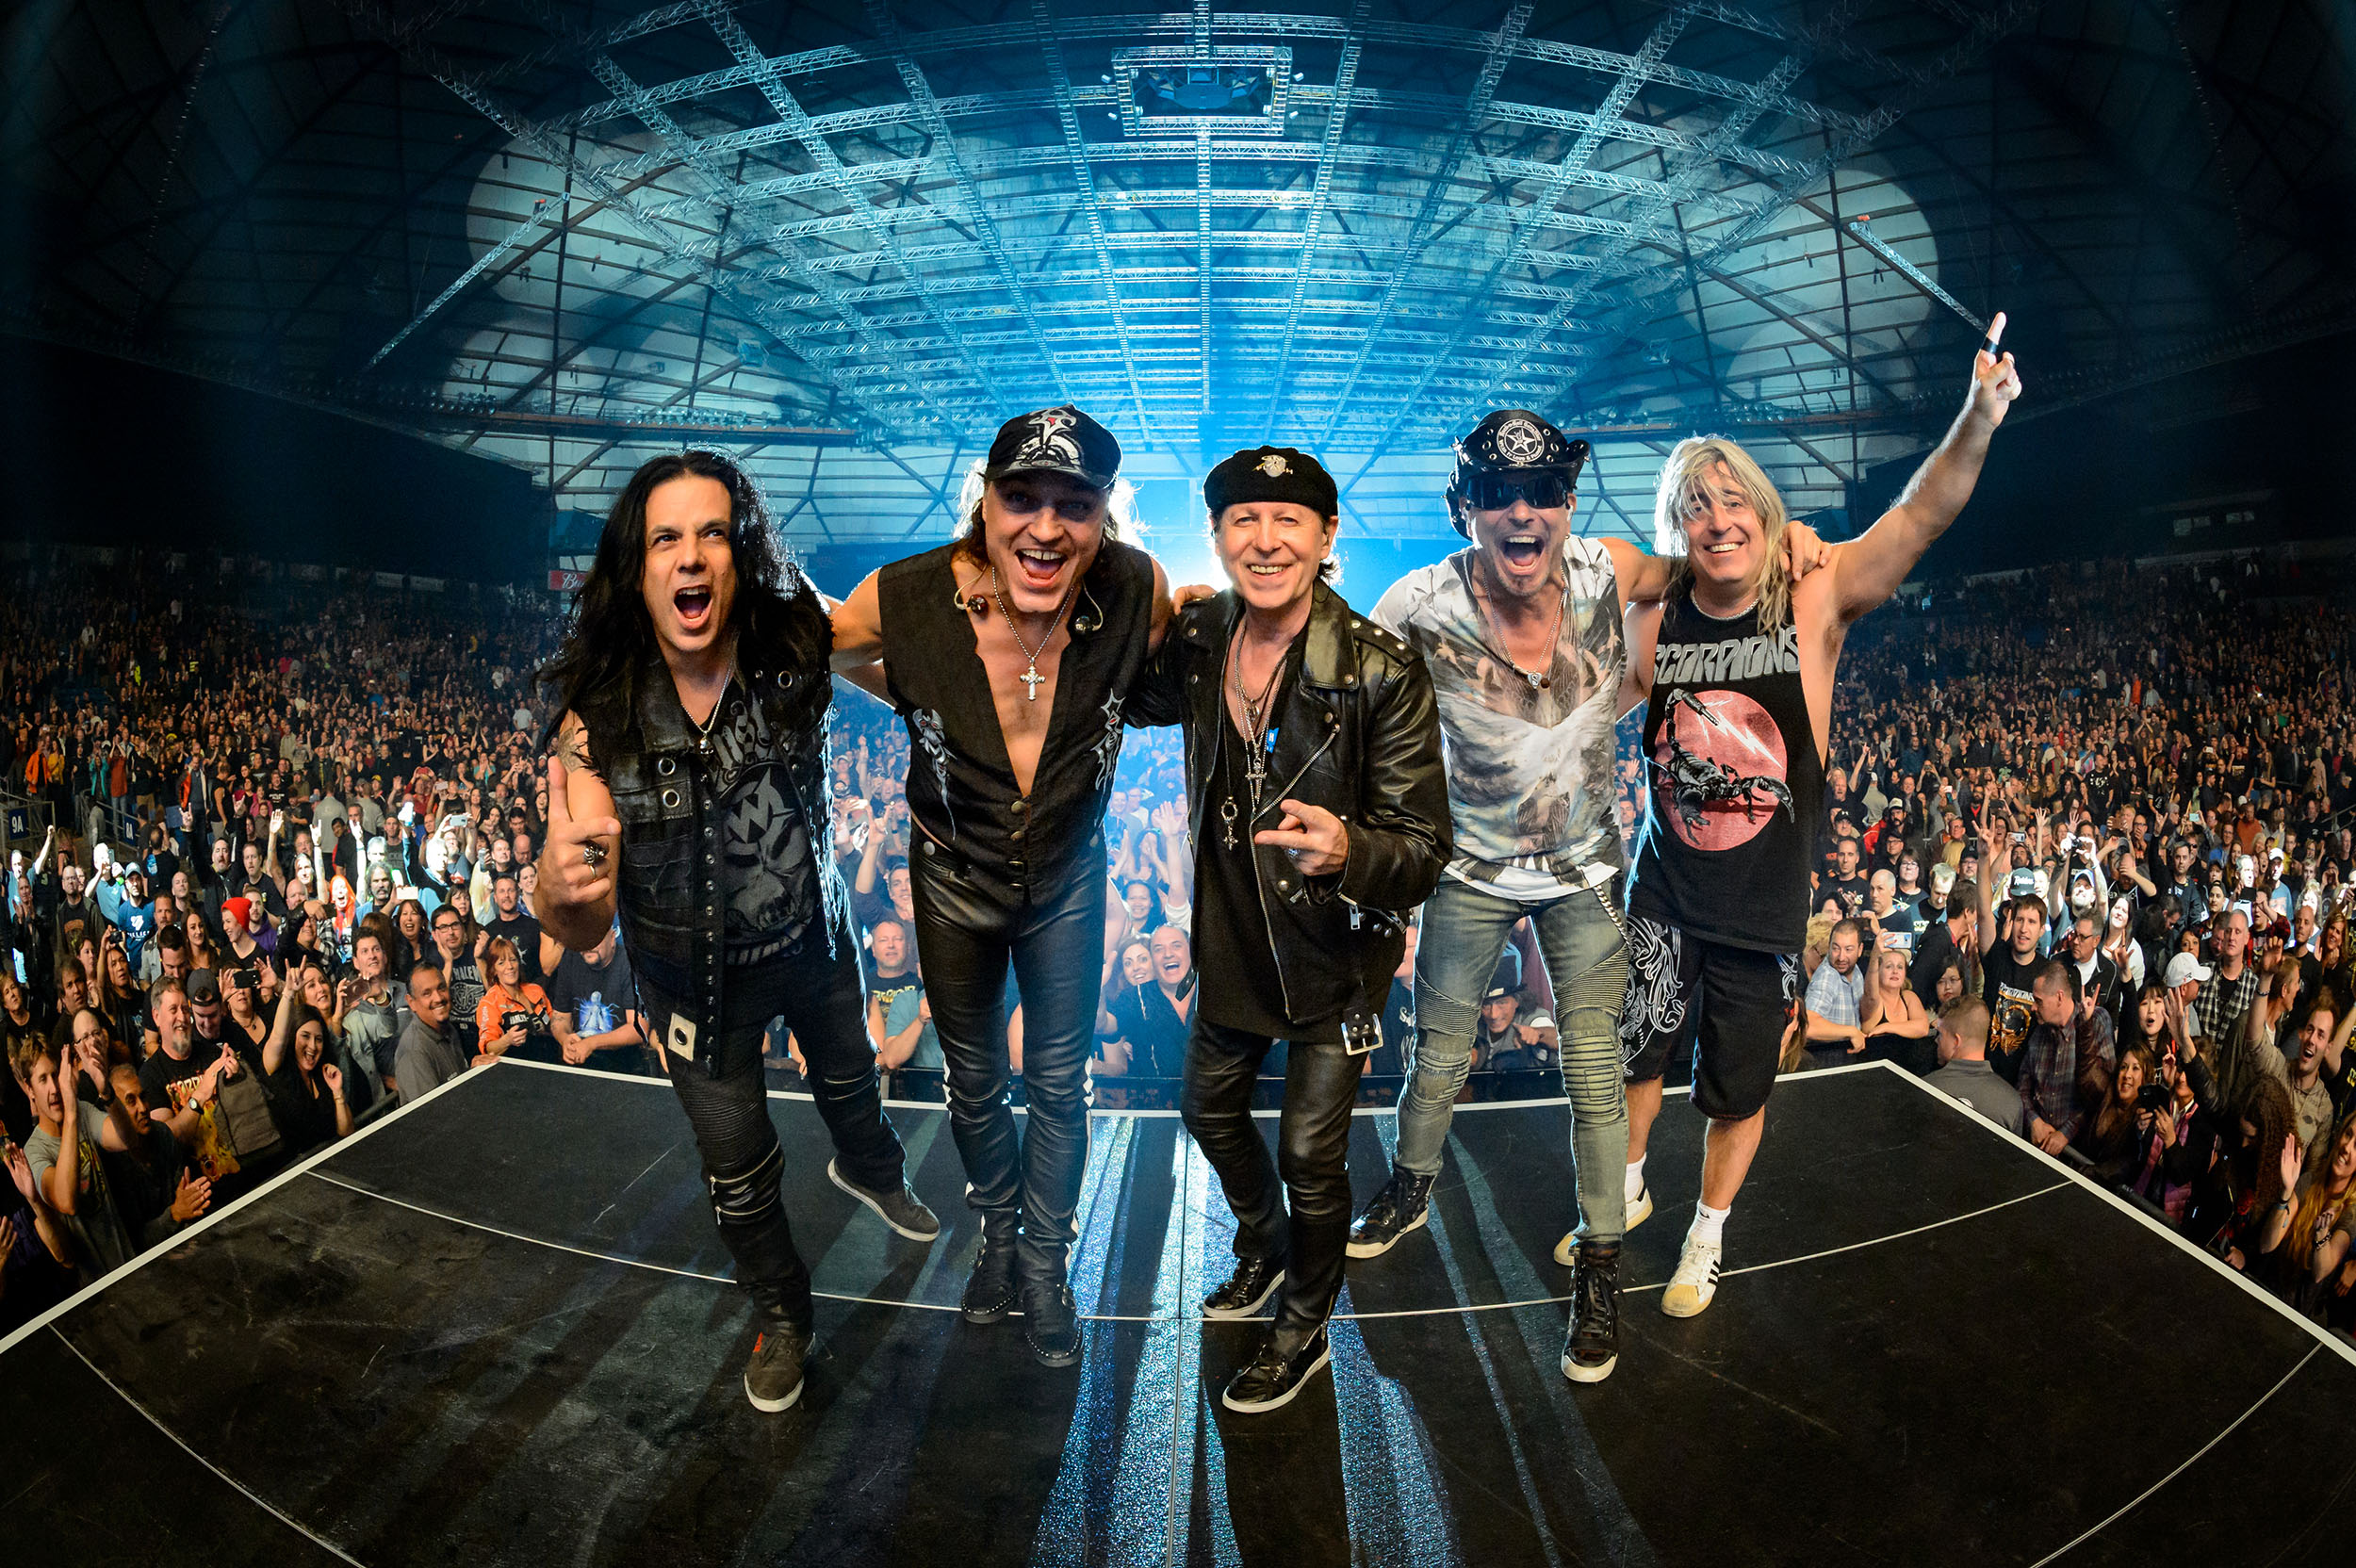 scorpions_group_seattle_photo_credit_jovan_nenadic.jpg